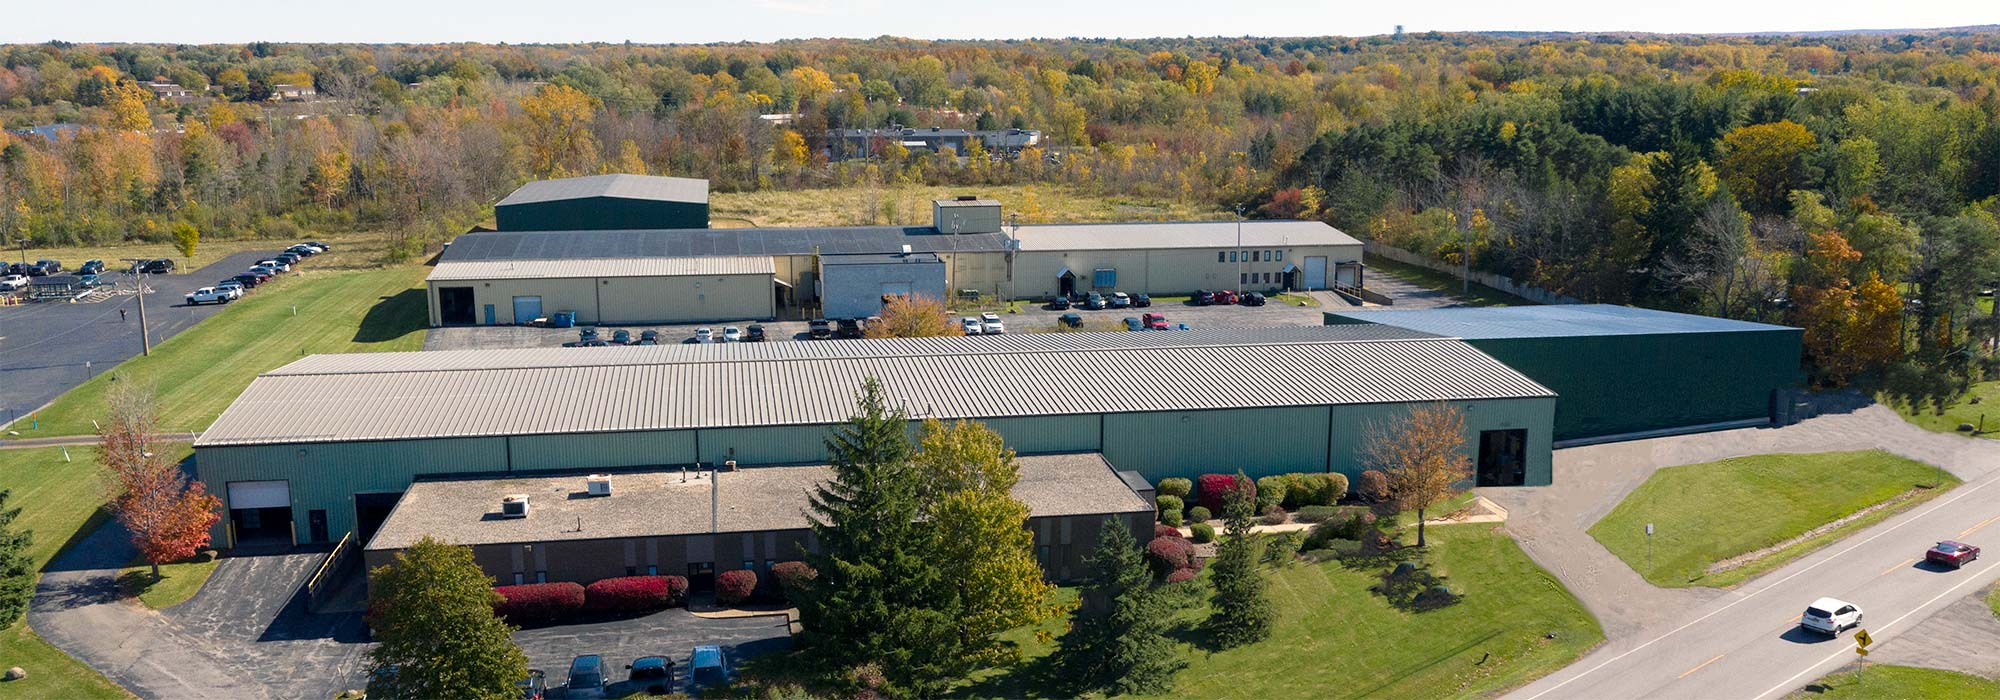 overhead view of taylor metalworks industrial builing